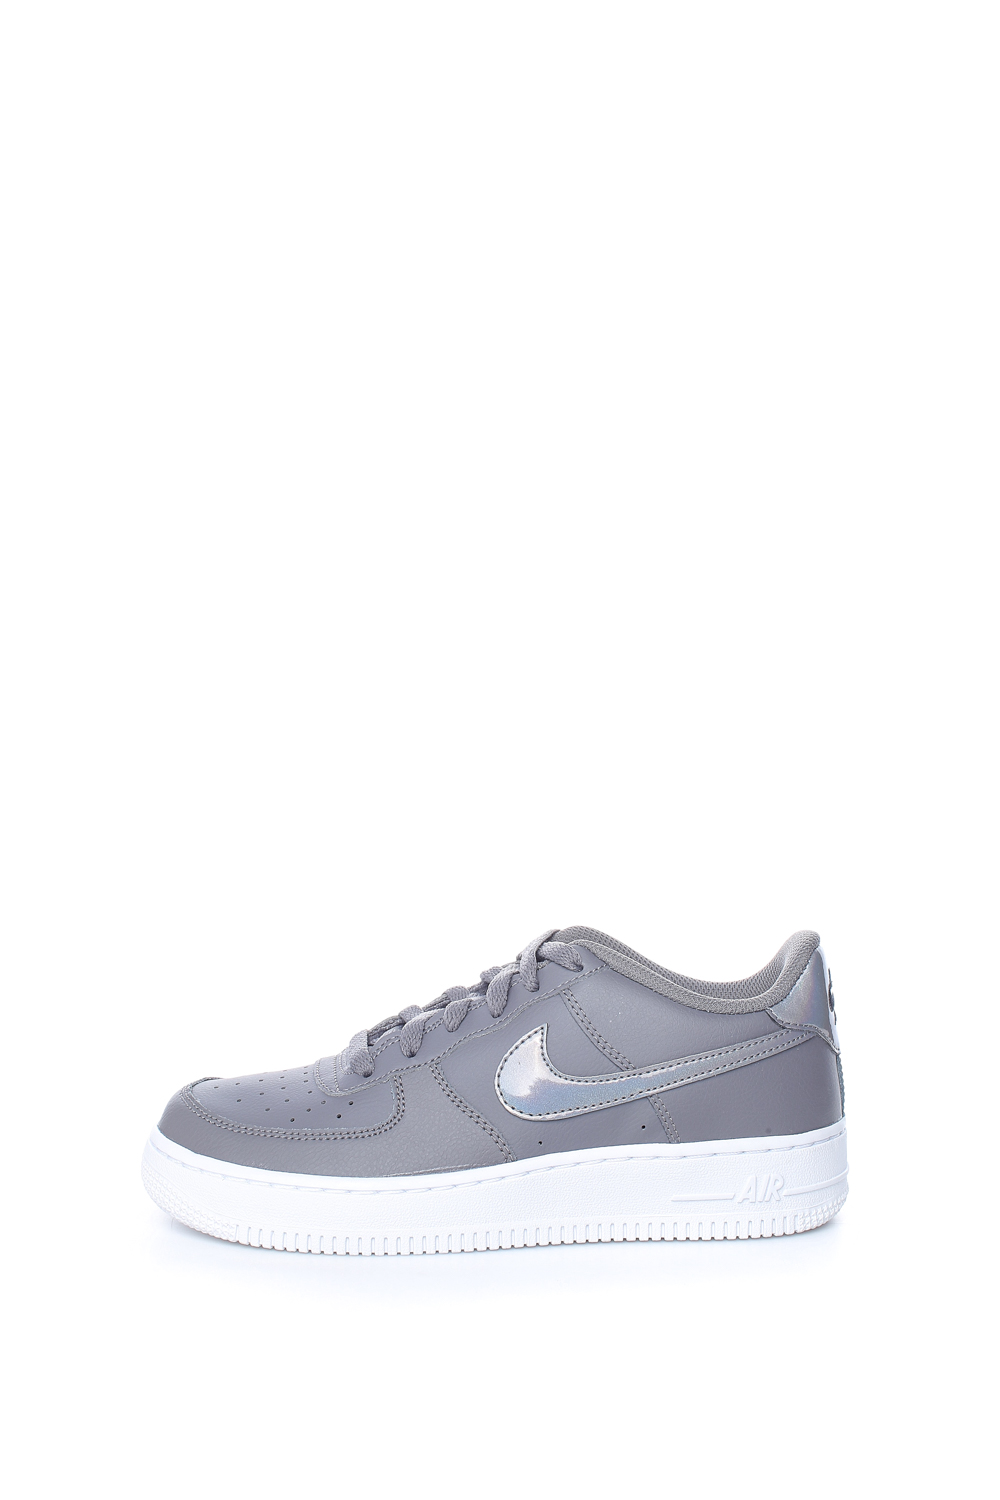 -30% Collective Online NIKE – Παιδικά παπούτσια NIKE AIR FORCE 1 (GS) γκρι ed38fef81ef